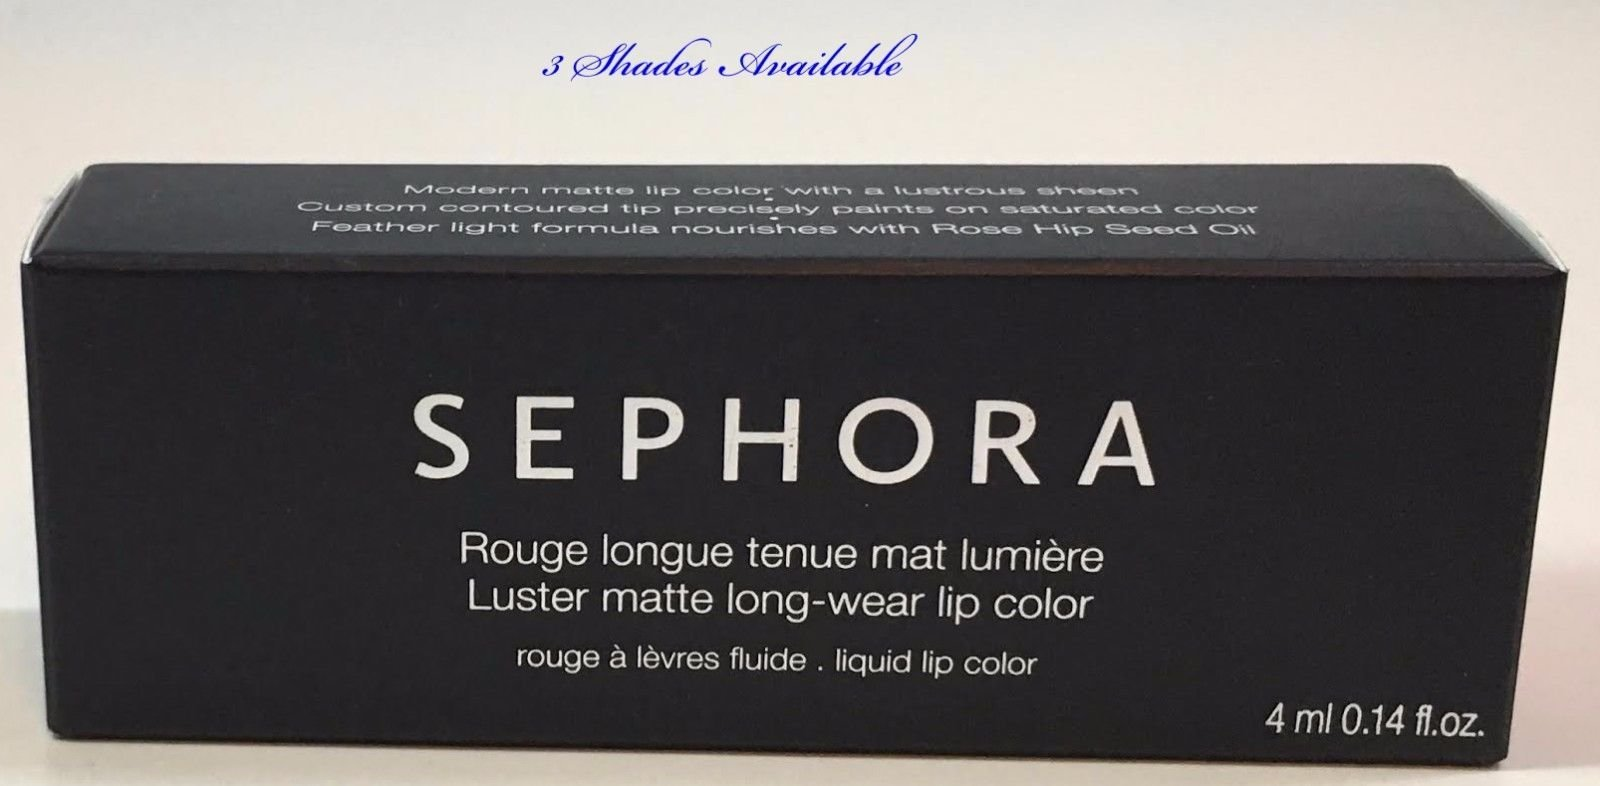 Sephora Collection Luster Matte Long-Wear Lip Color 0.14 oz -Shade Choices 14784